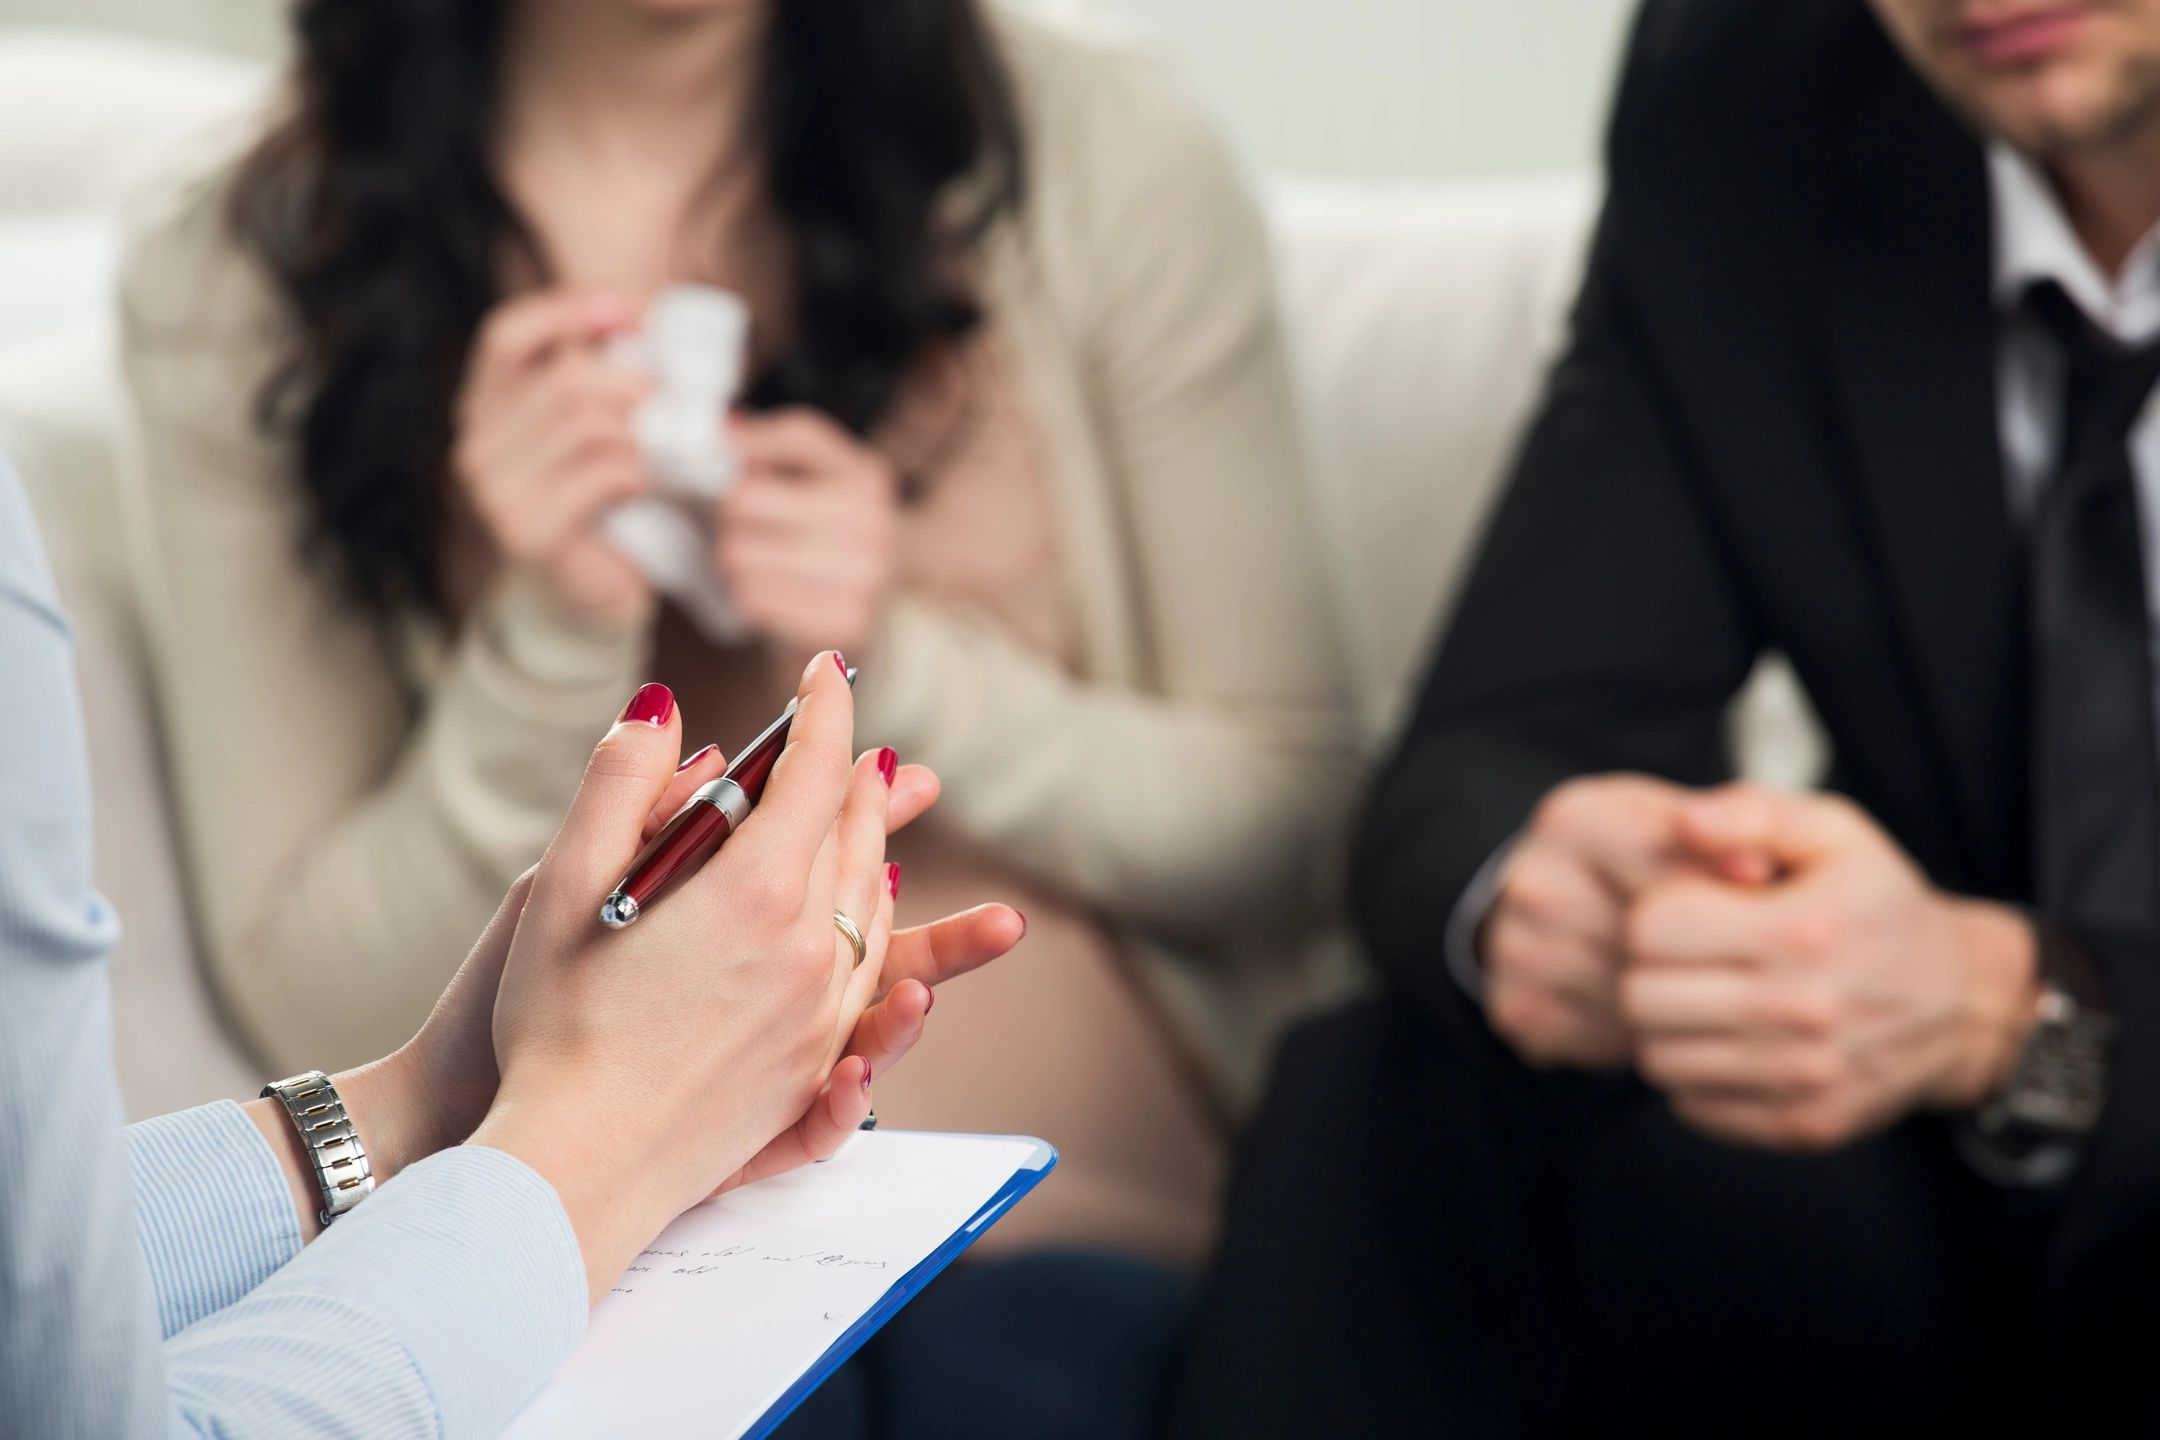 Thompsontown Marital Counseling